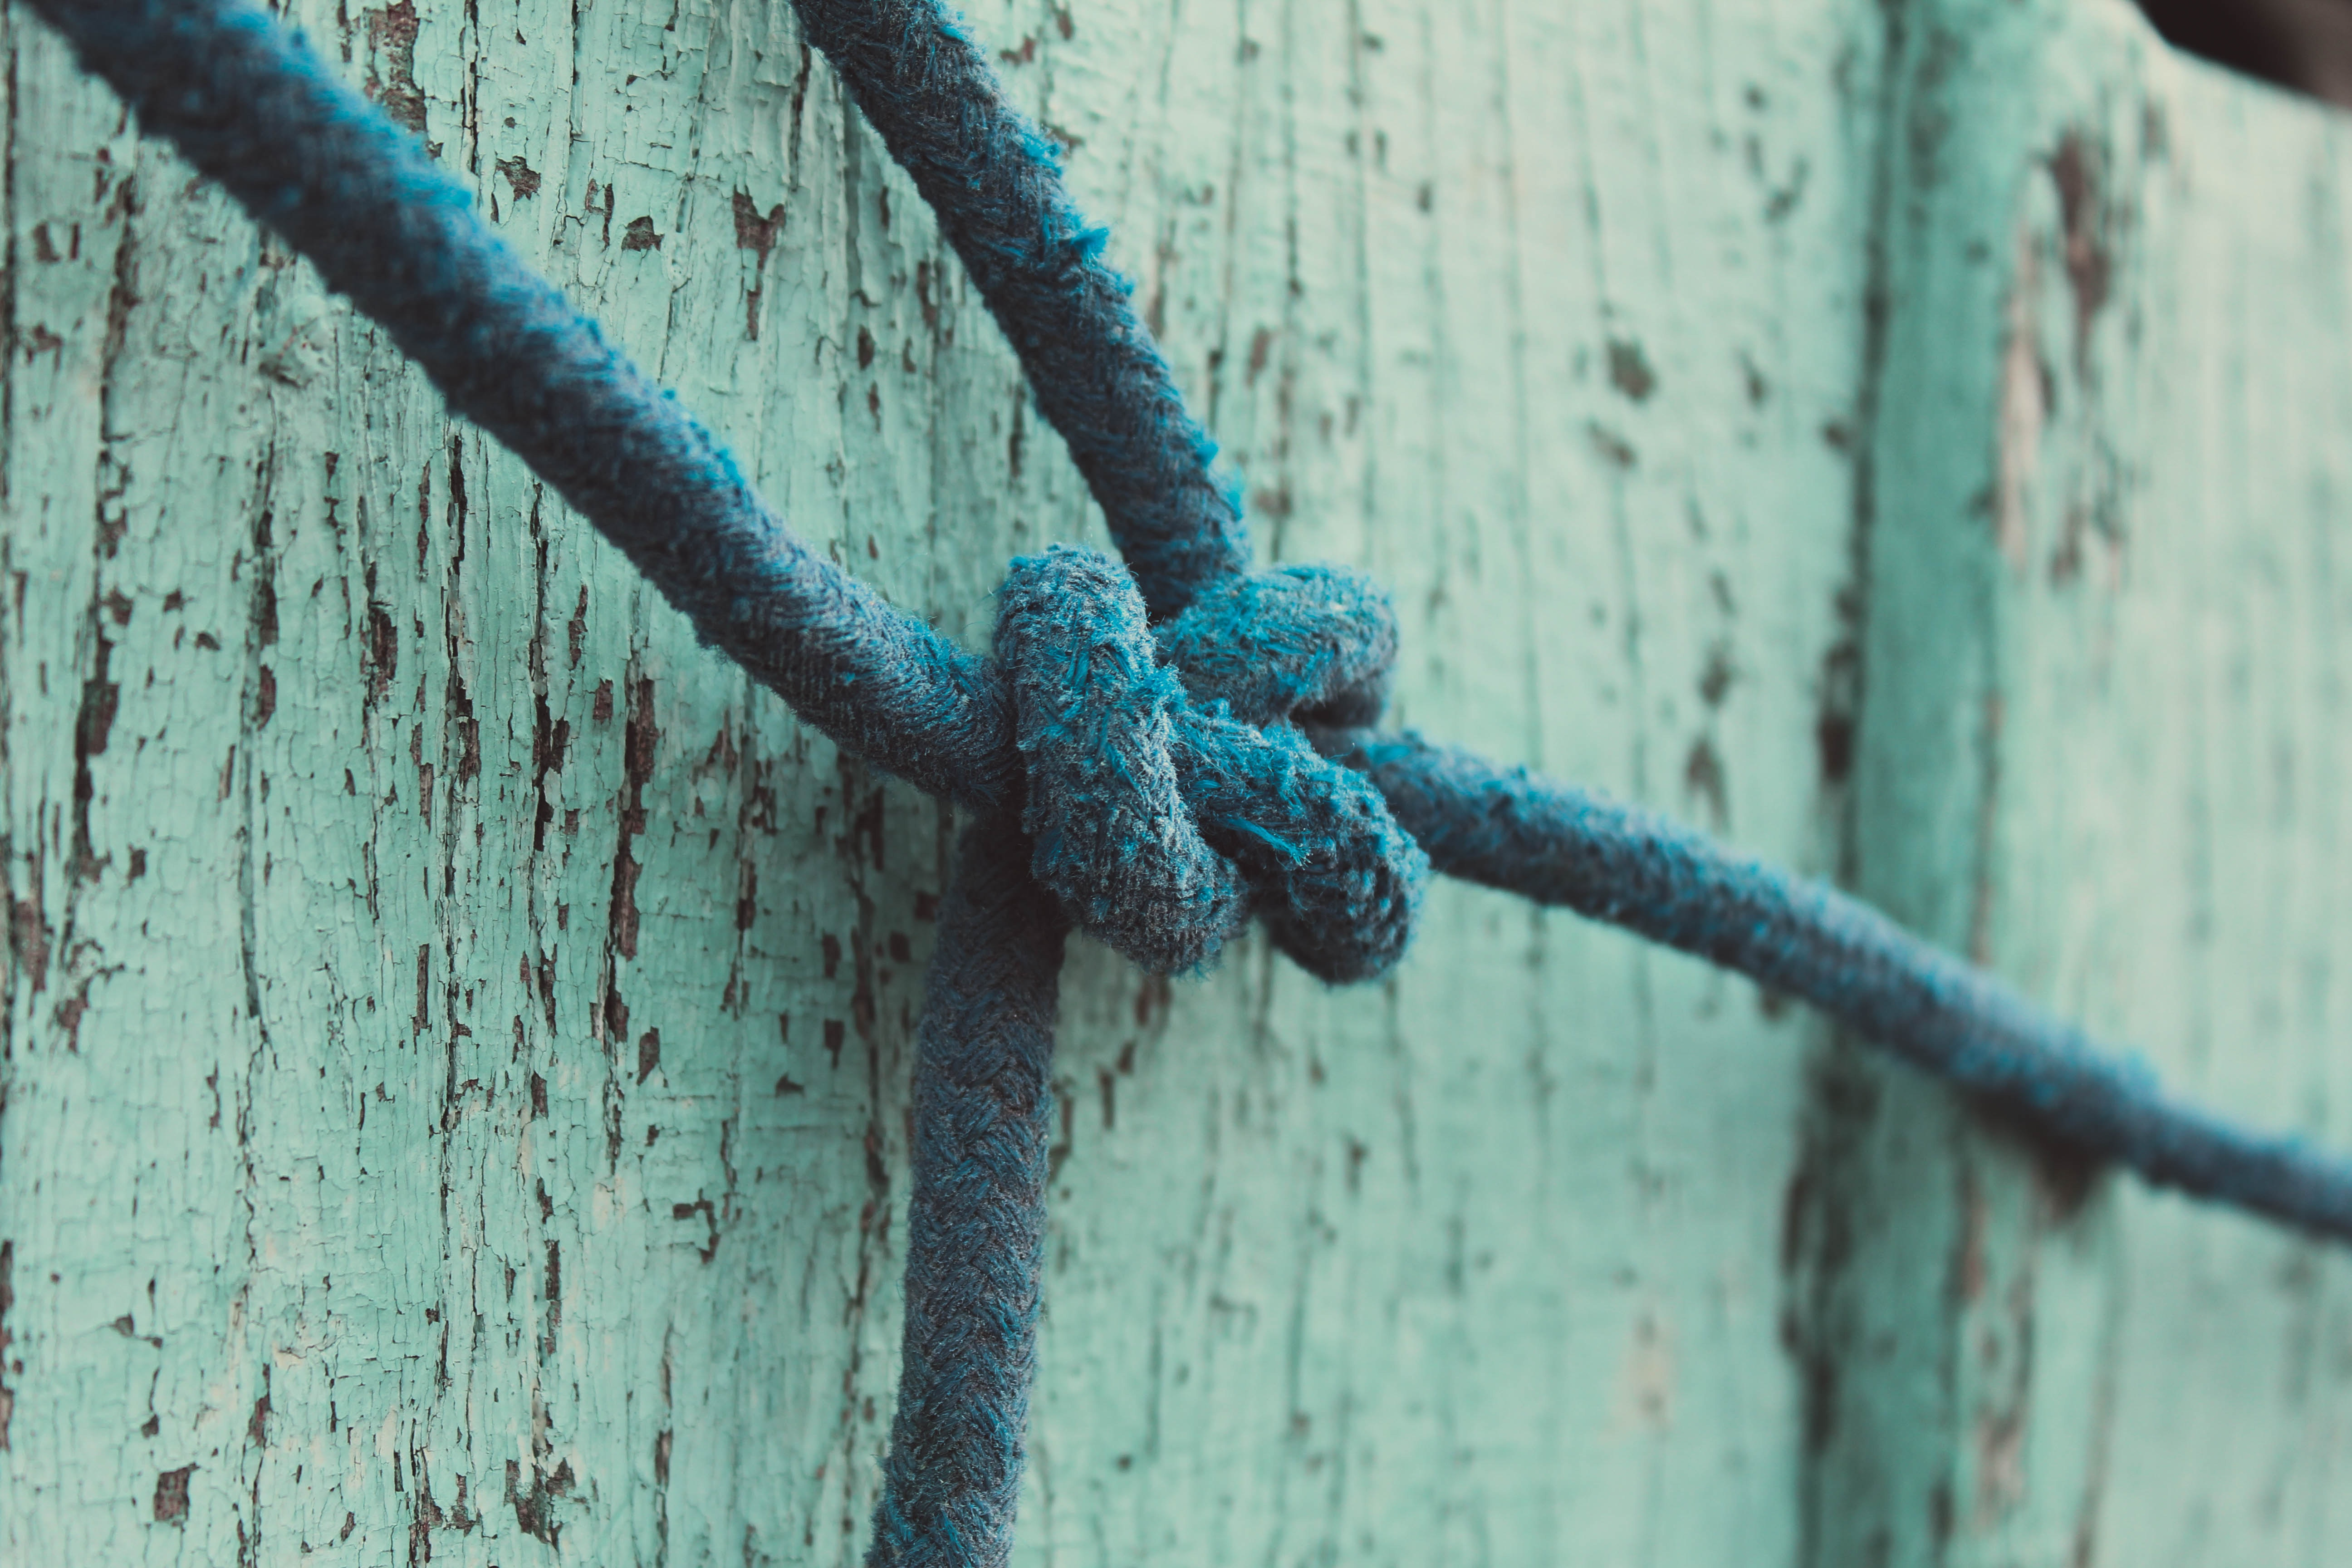 Bowline-one of the most important knots